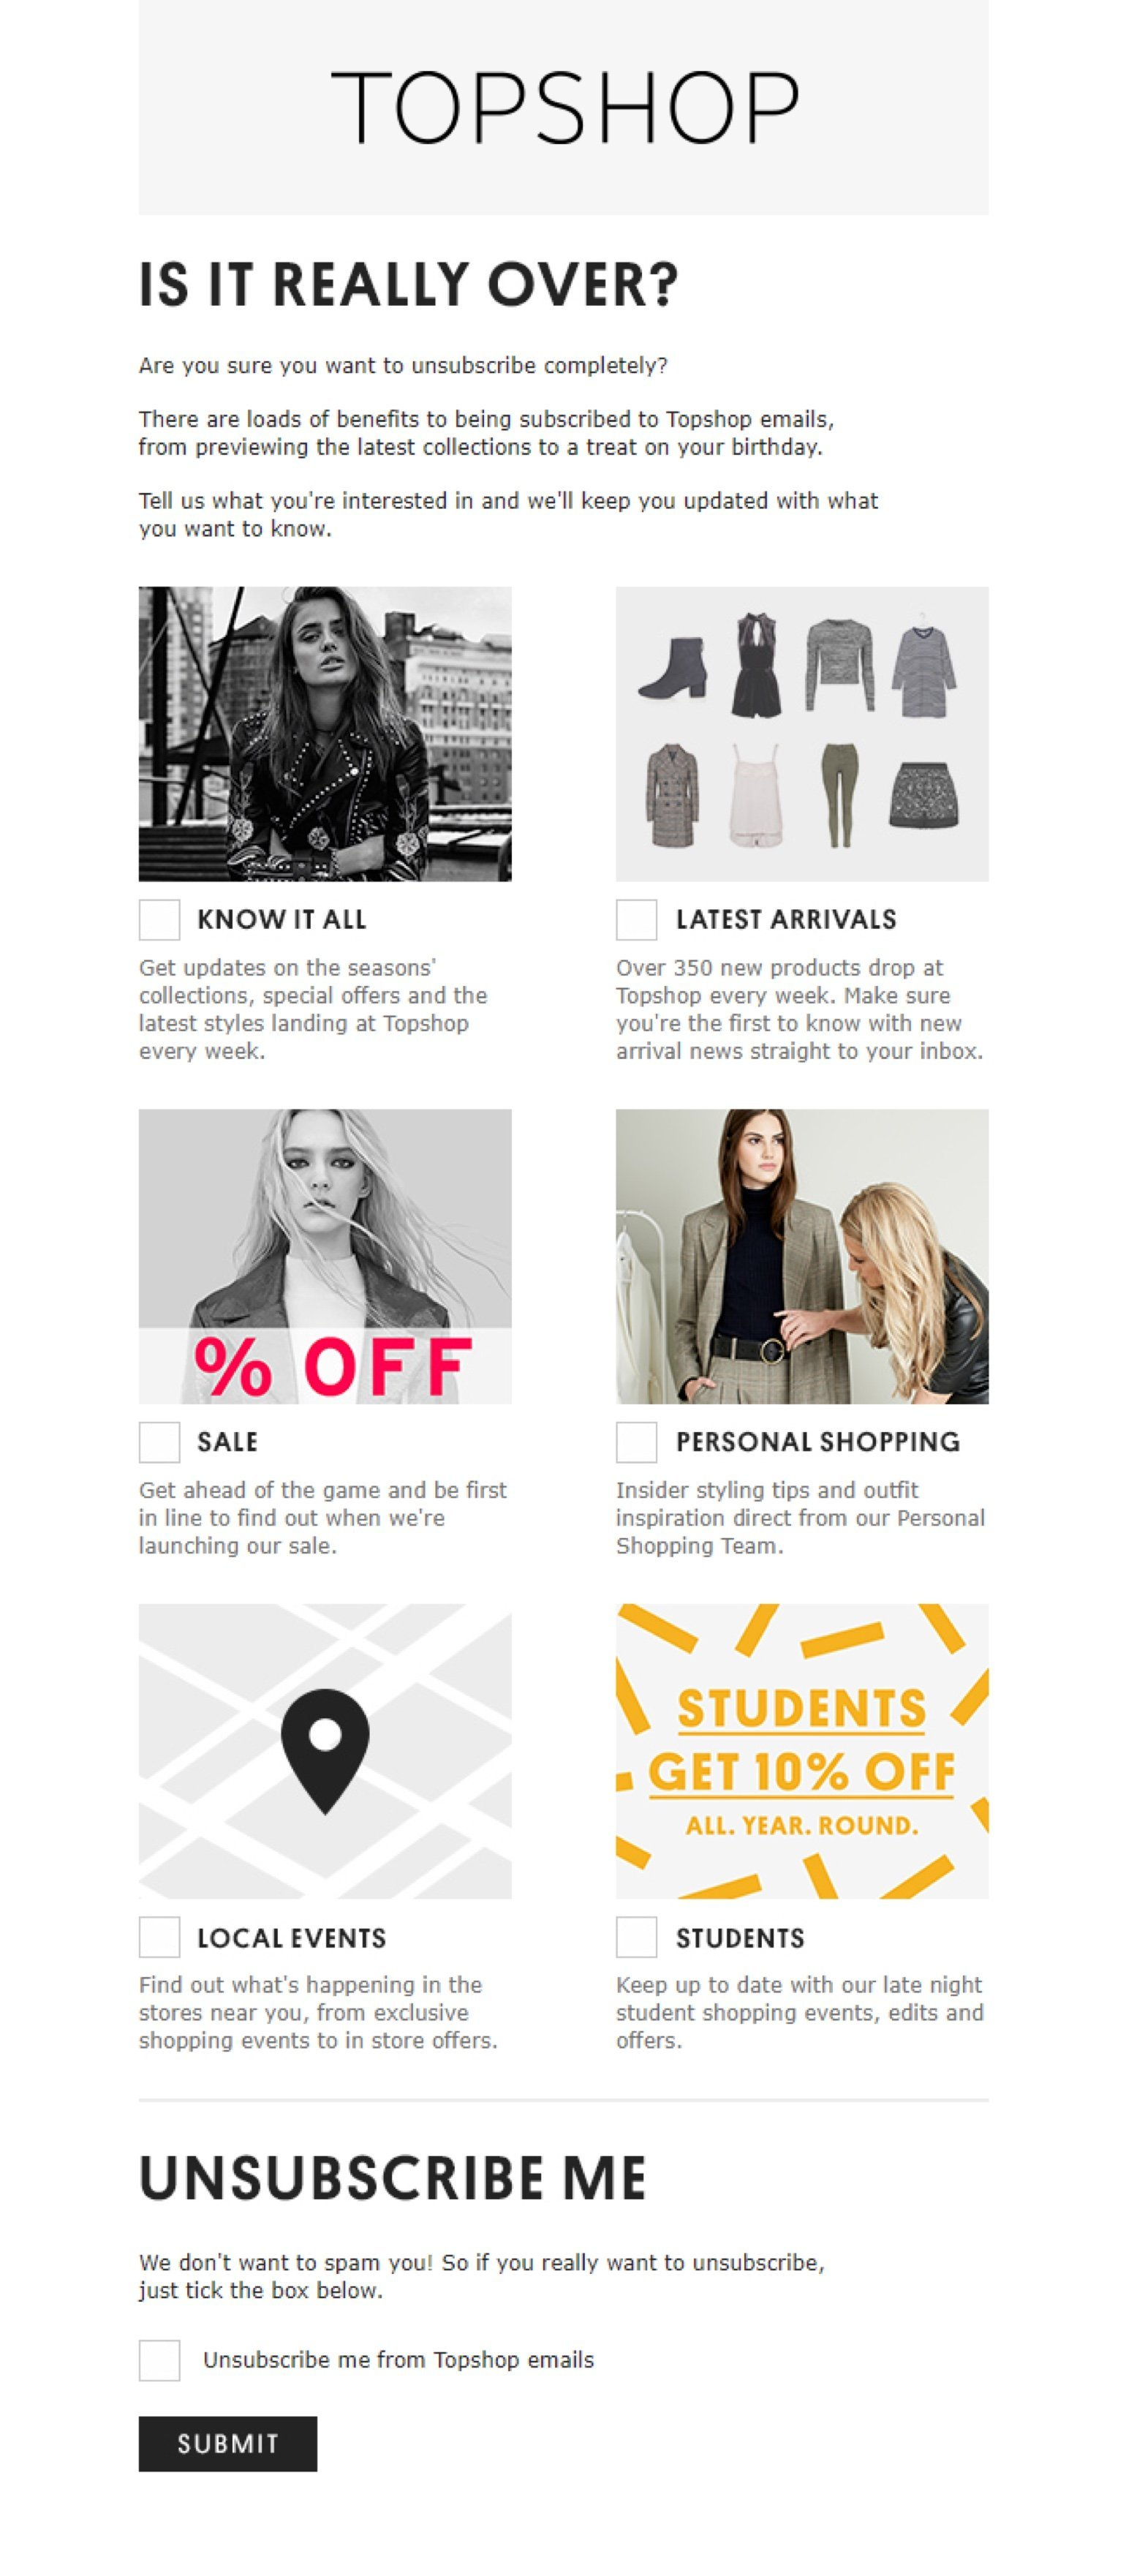 Topshop unsubscribe page example